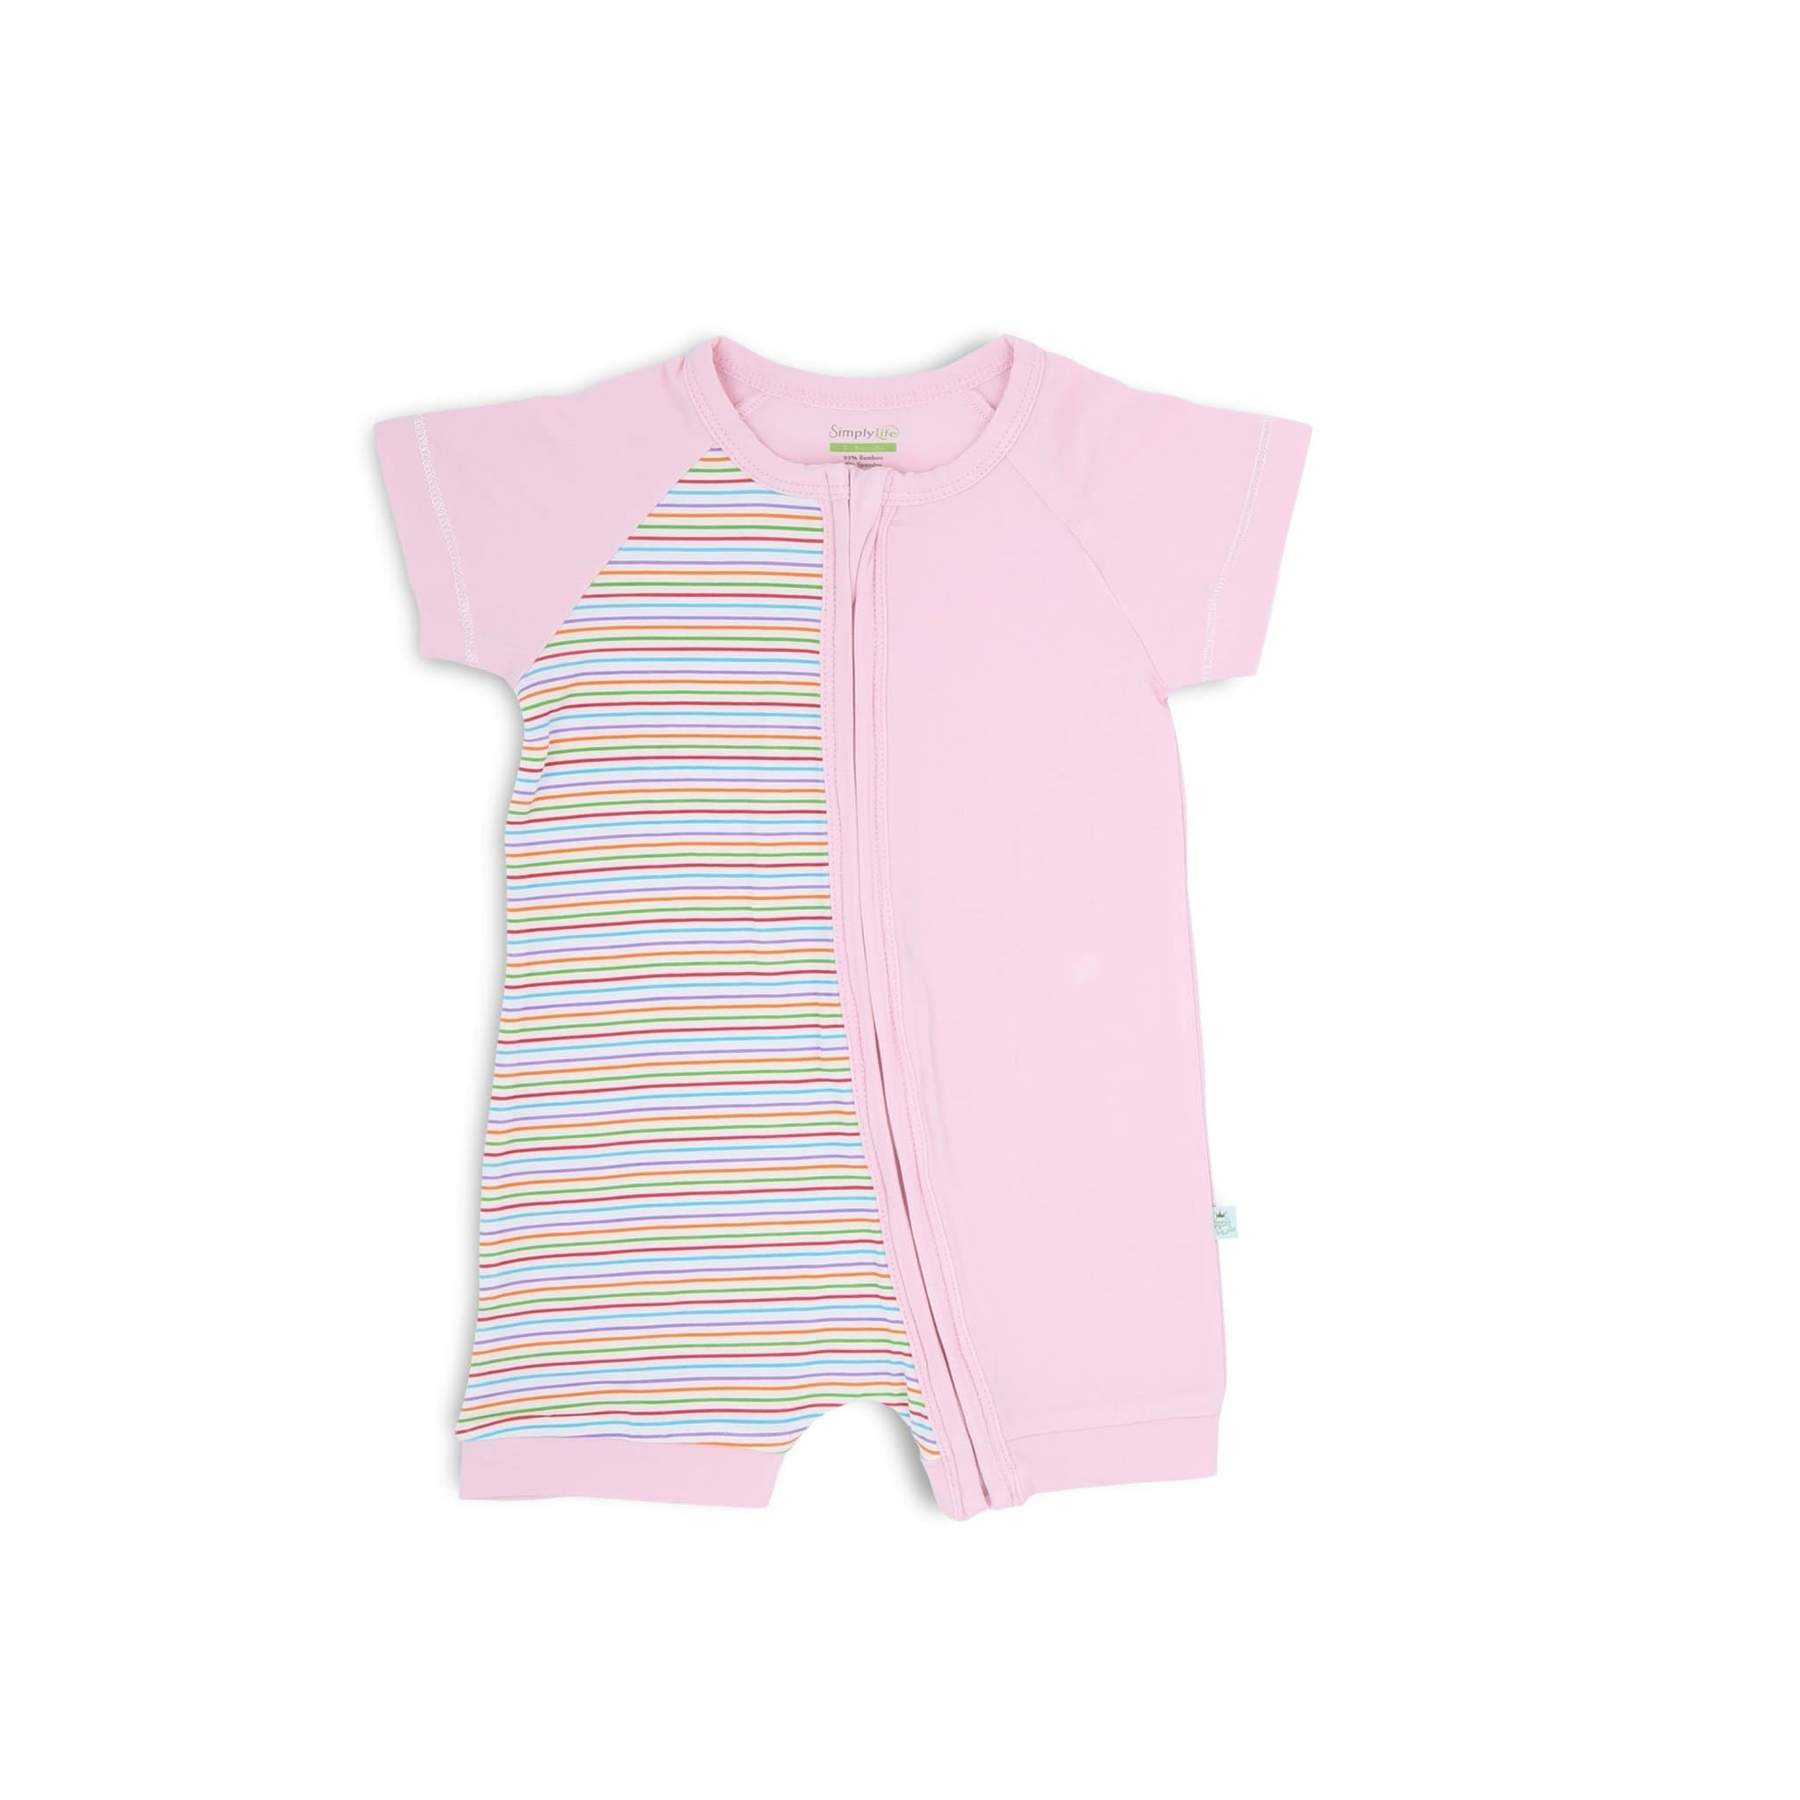 Simply Life Bamboo Short-sleeved shortall with zipper - Pink Strips(Various Sizes Available)